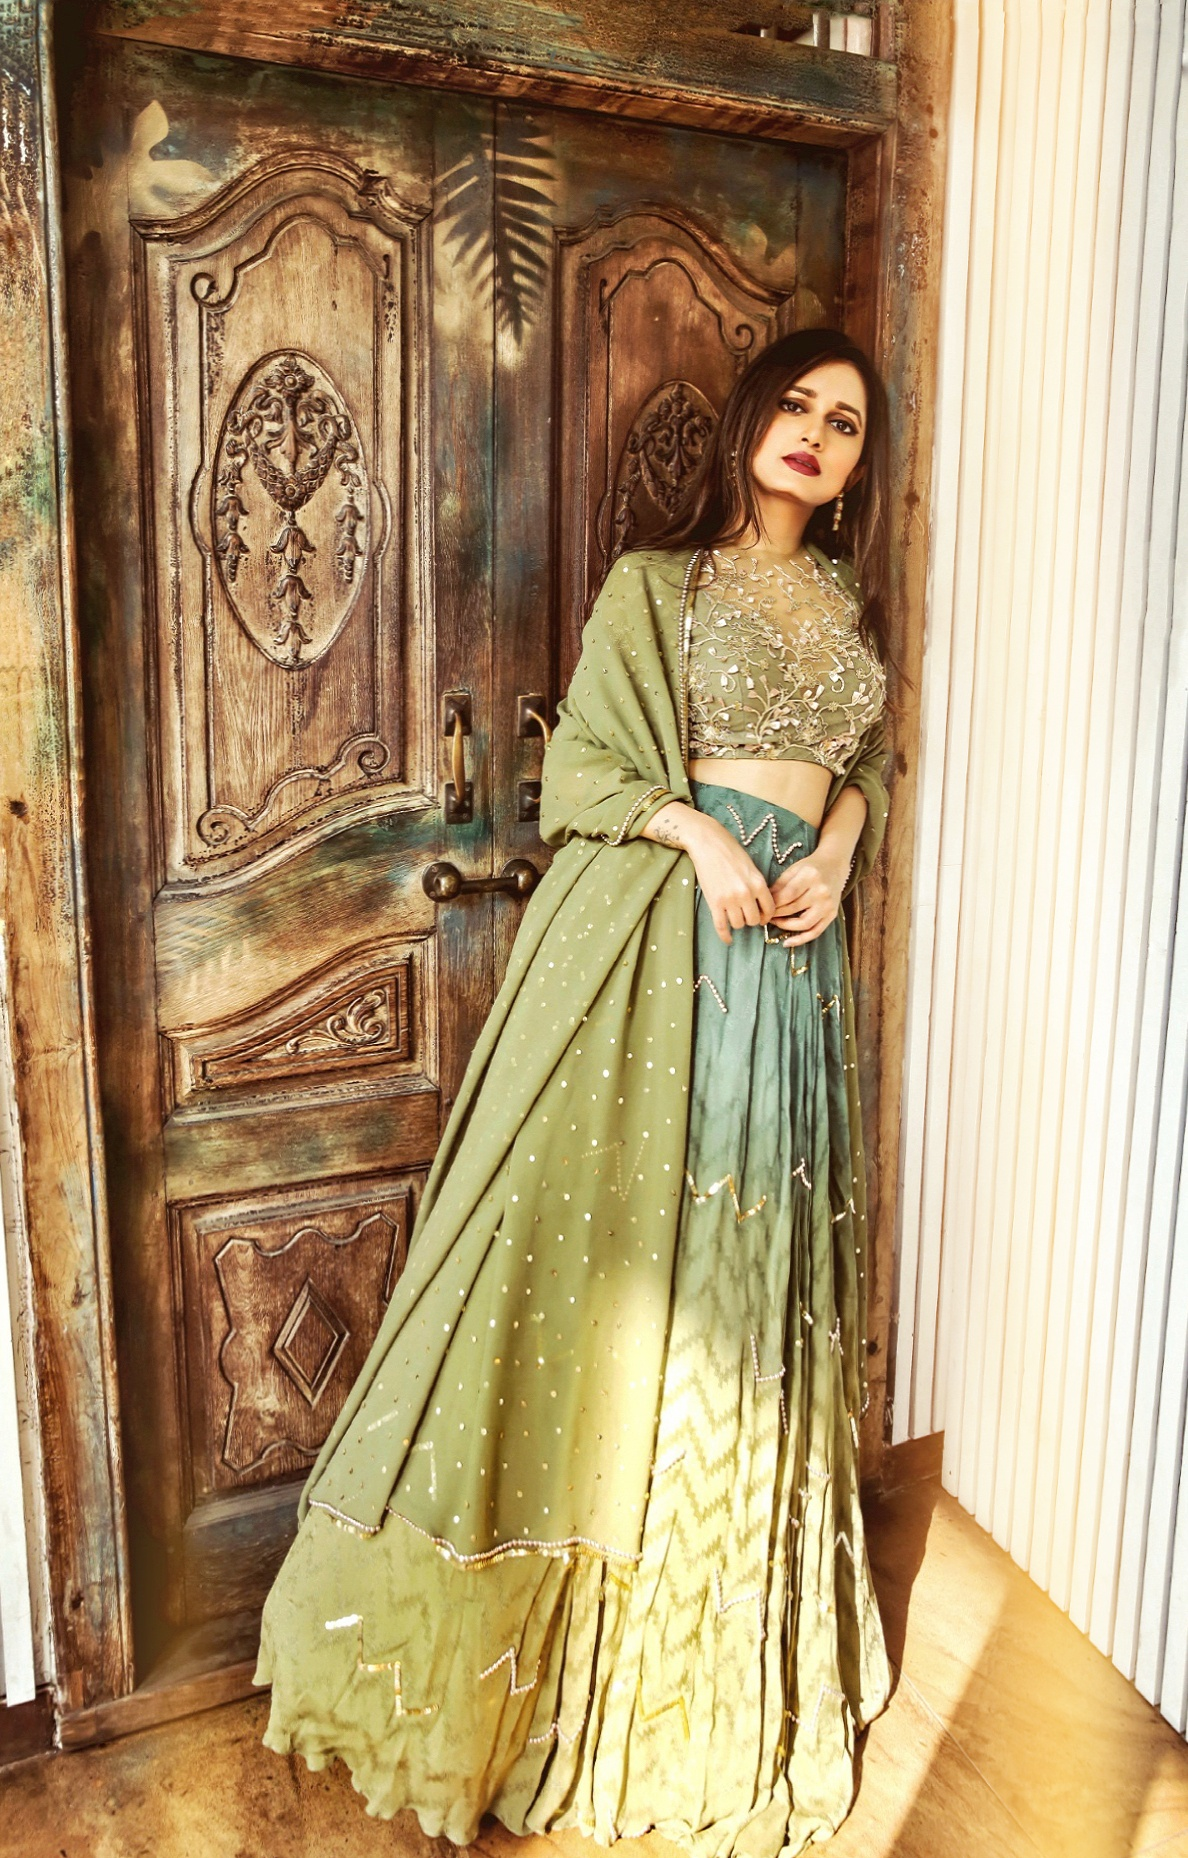 The-Chic-Armoire-by-Nidhi-Kunder-Ohaila-Khan-11